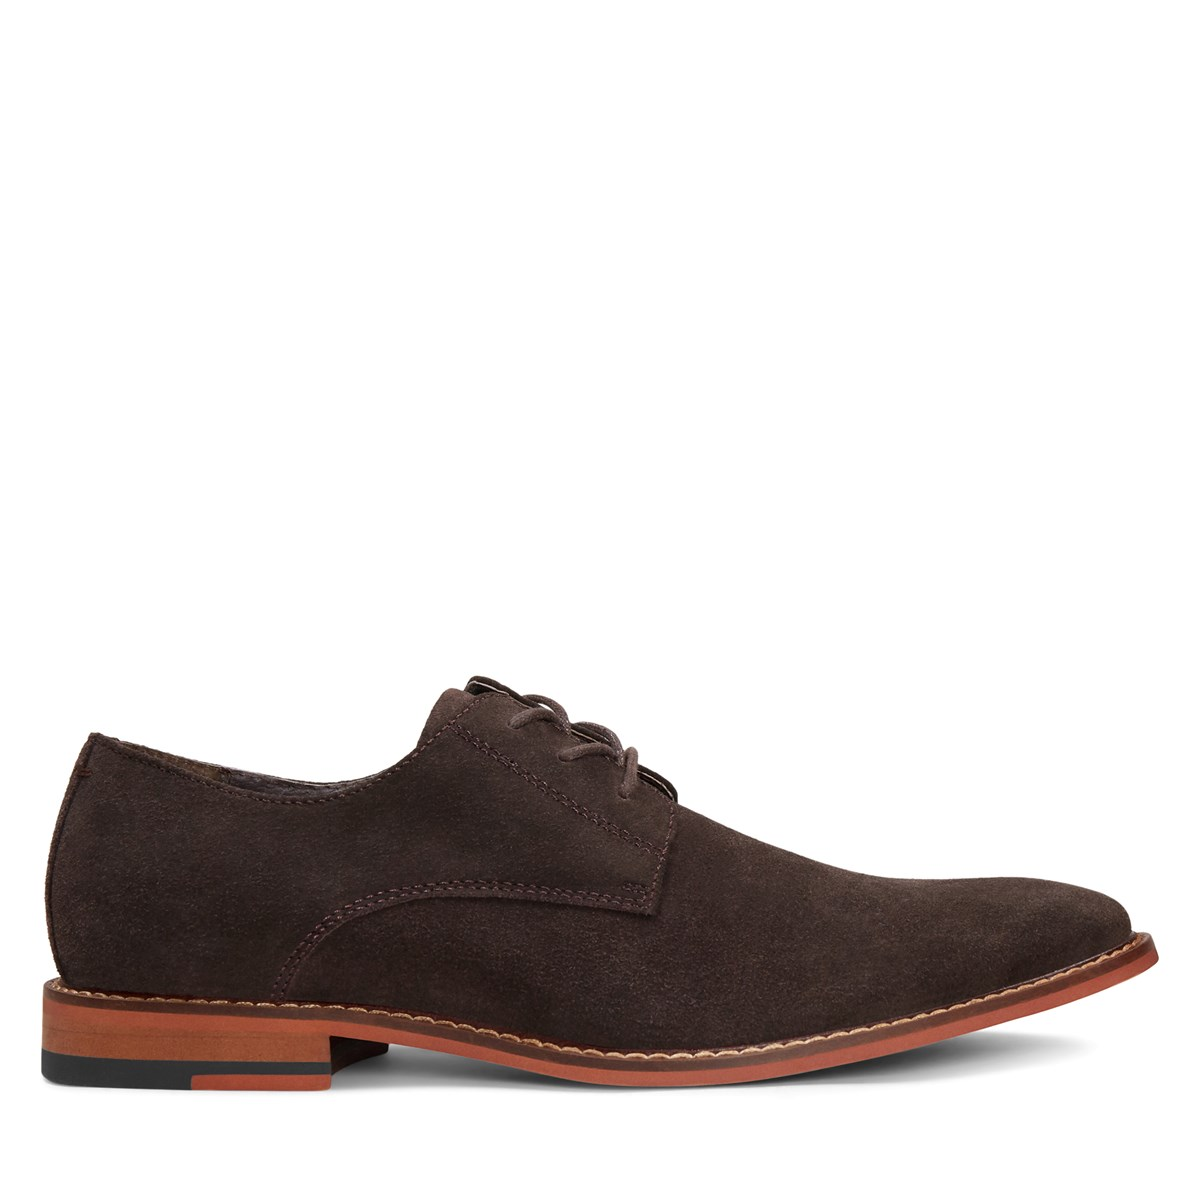 Men's Alberto Lace-Up Shoe in Brown